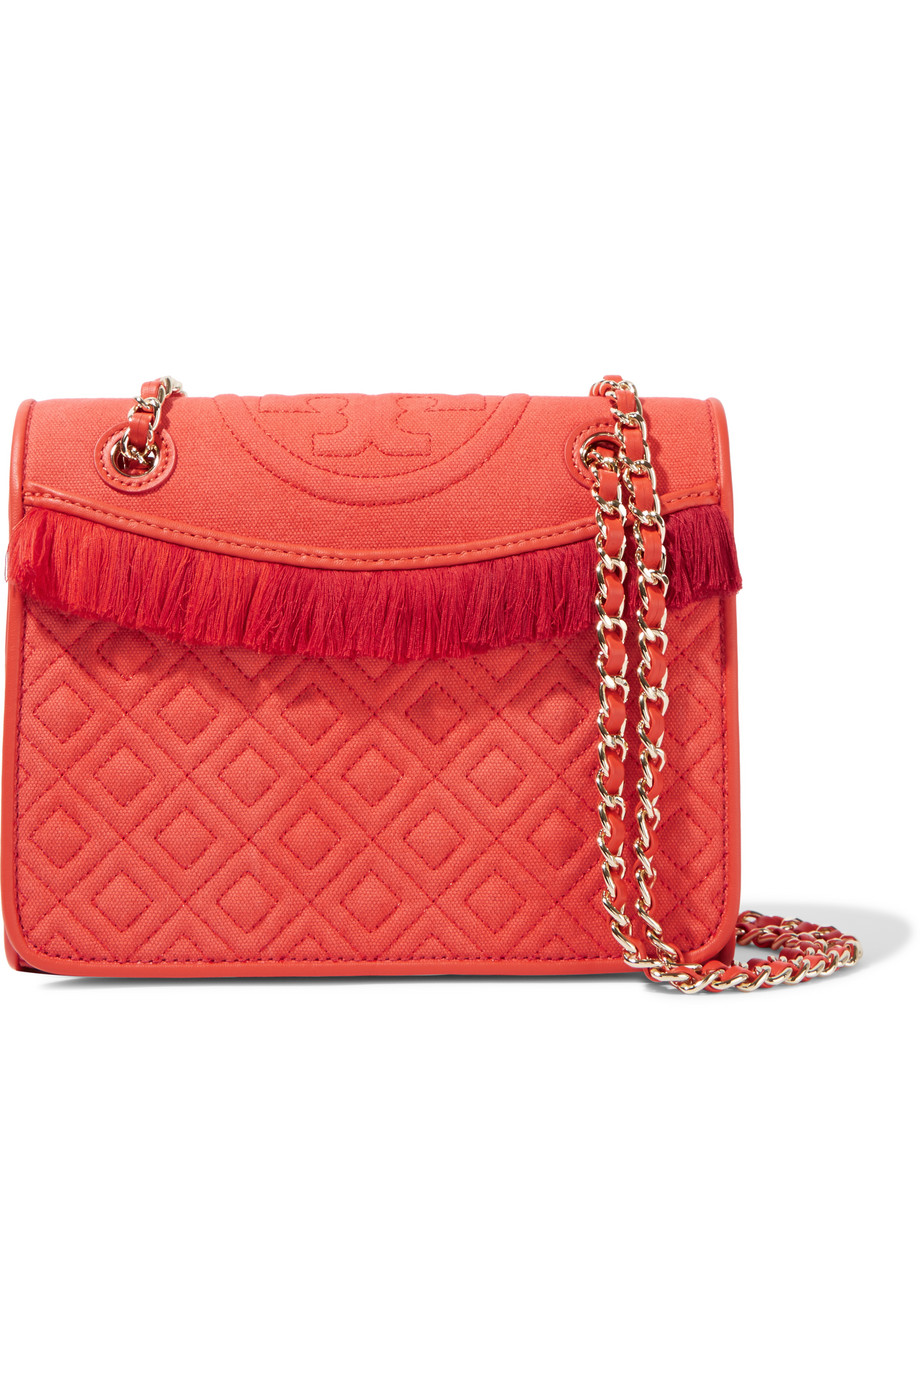 Tory Burch Fleming Fringed Quilted Canvas Shoulder Bag, Tomato Red, Women's